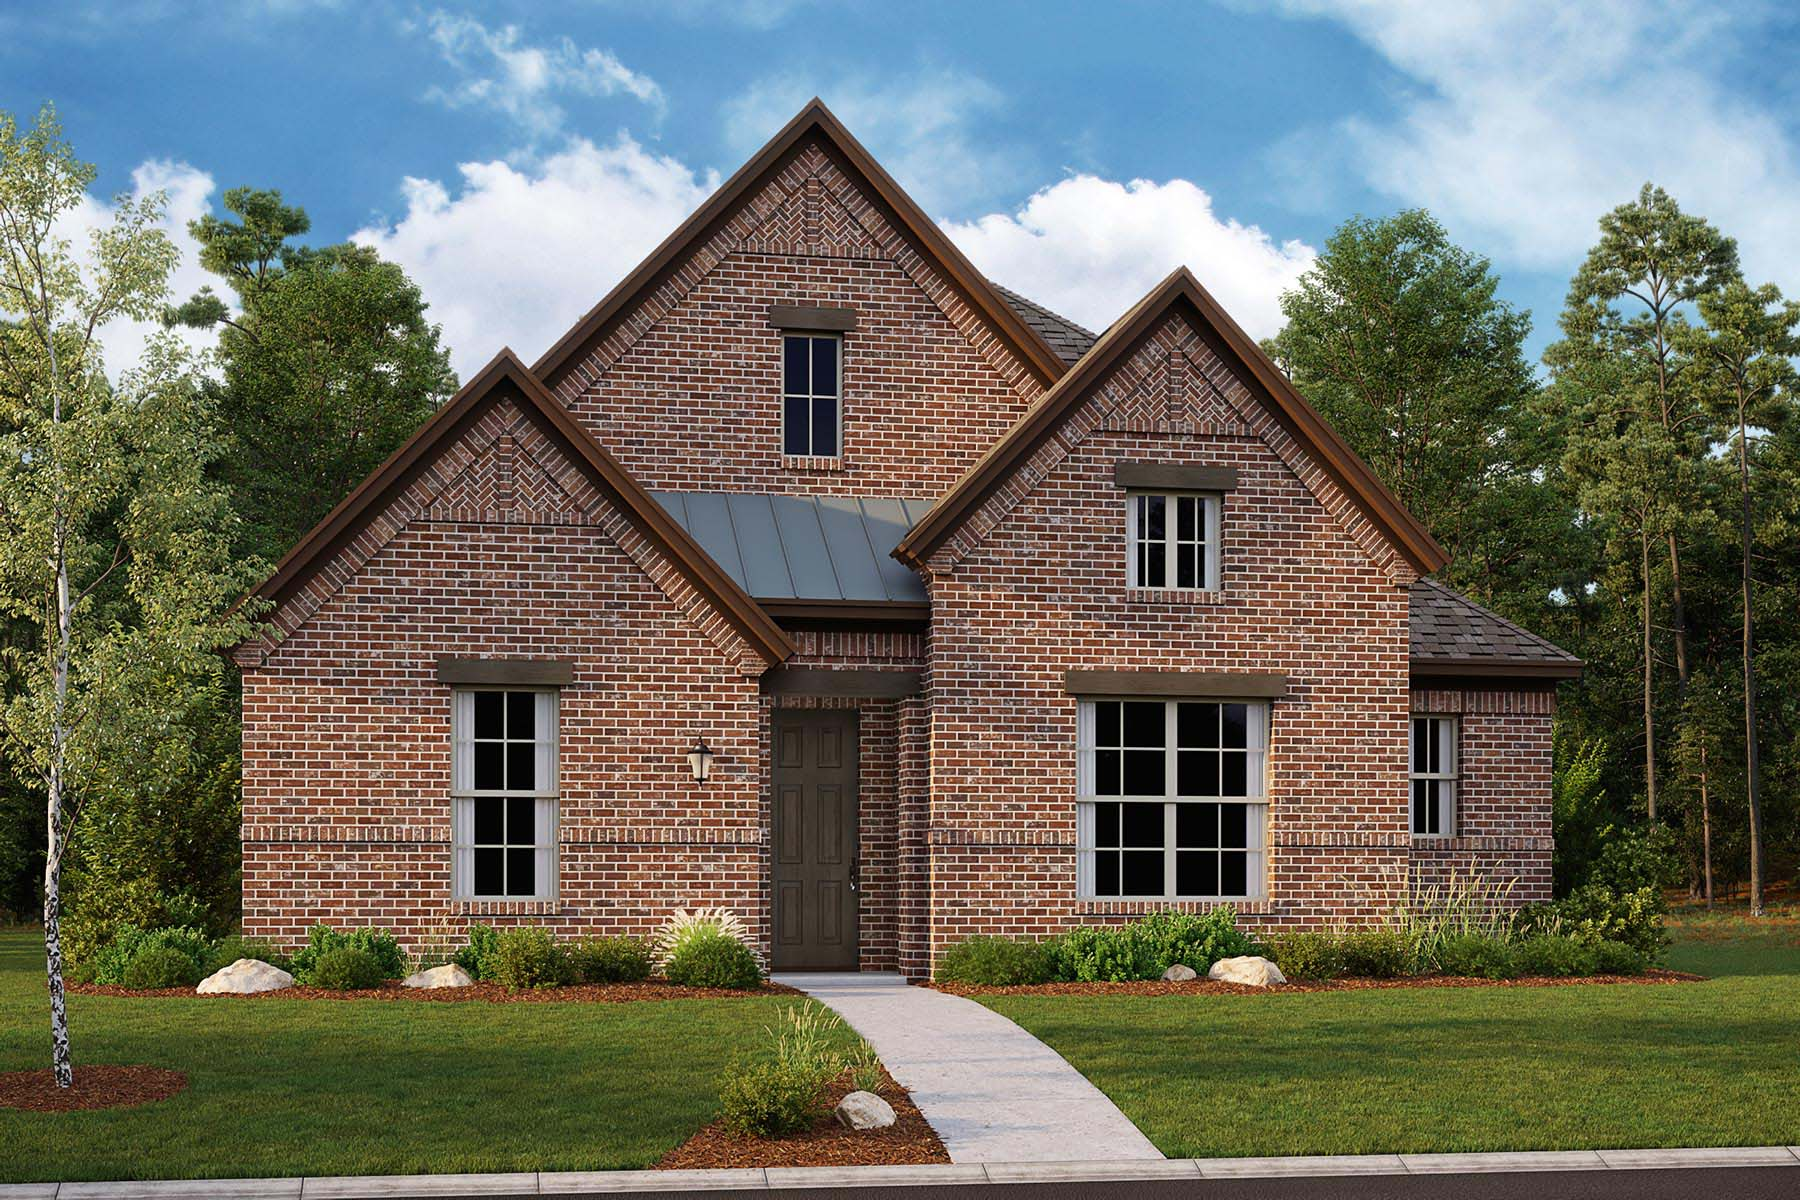 Carmel Plan Elevation Front at Kensington Place in Farmers Branch Texas by Mattamy Homes